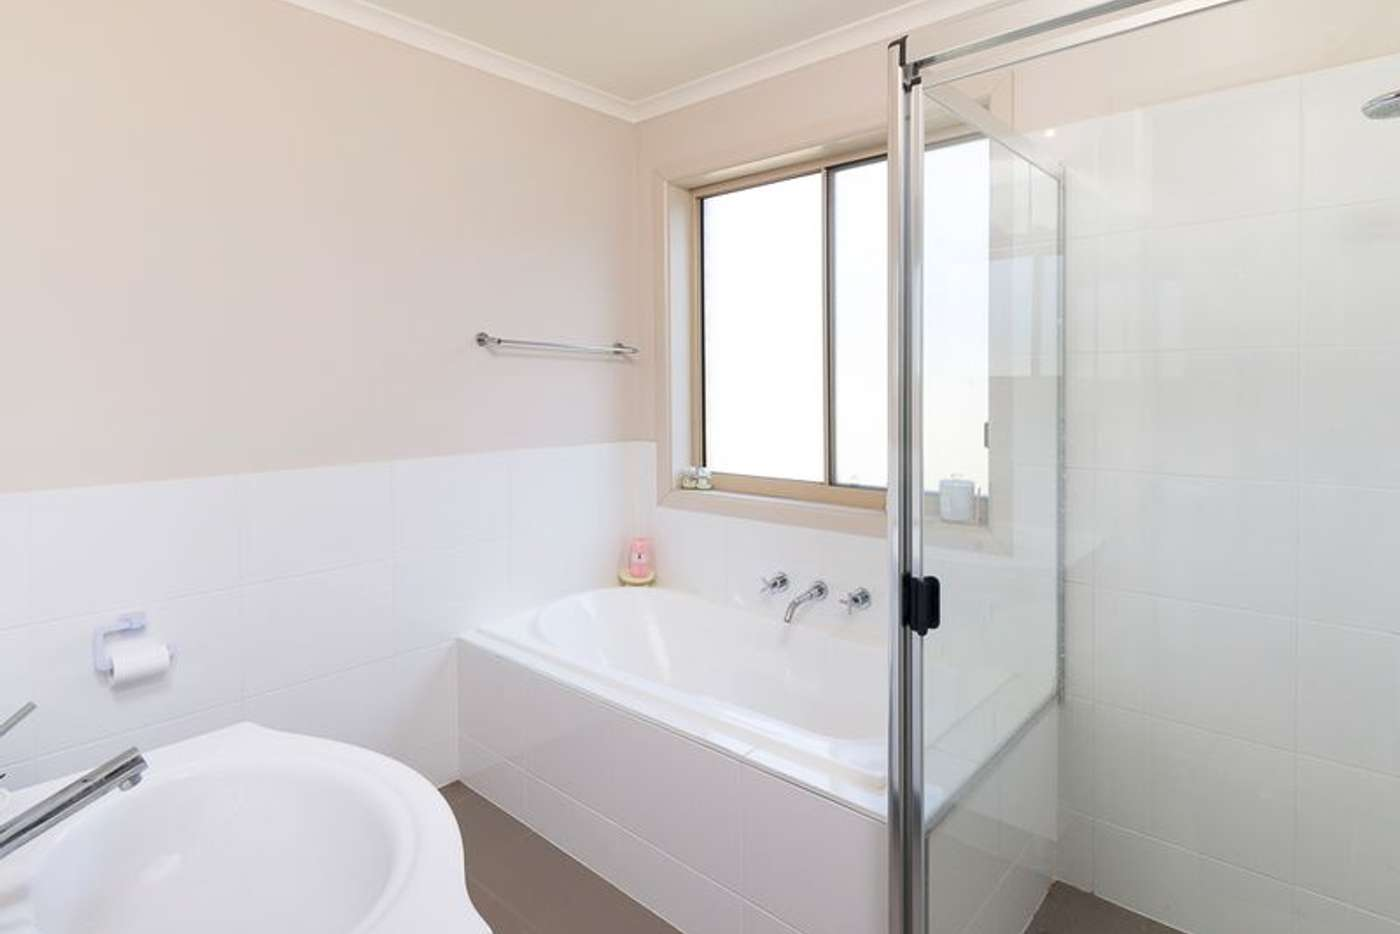 Sixth view of Homely house listing, 1 Sydney Road, Nairne SA 5252